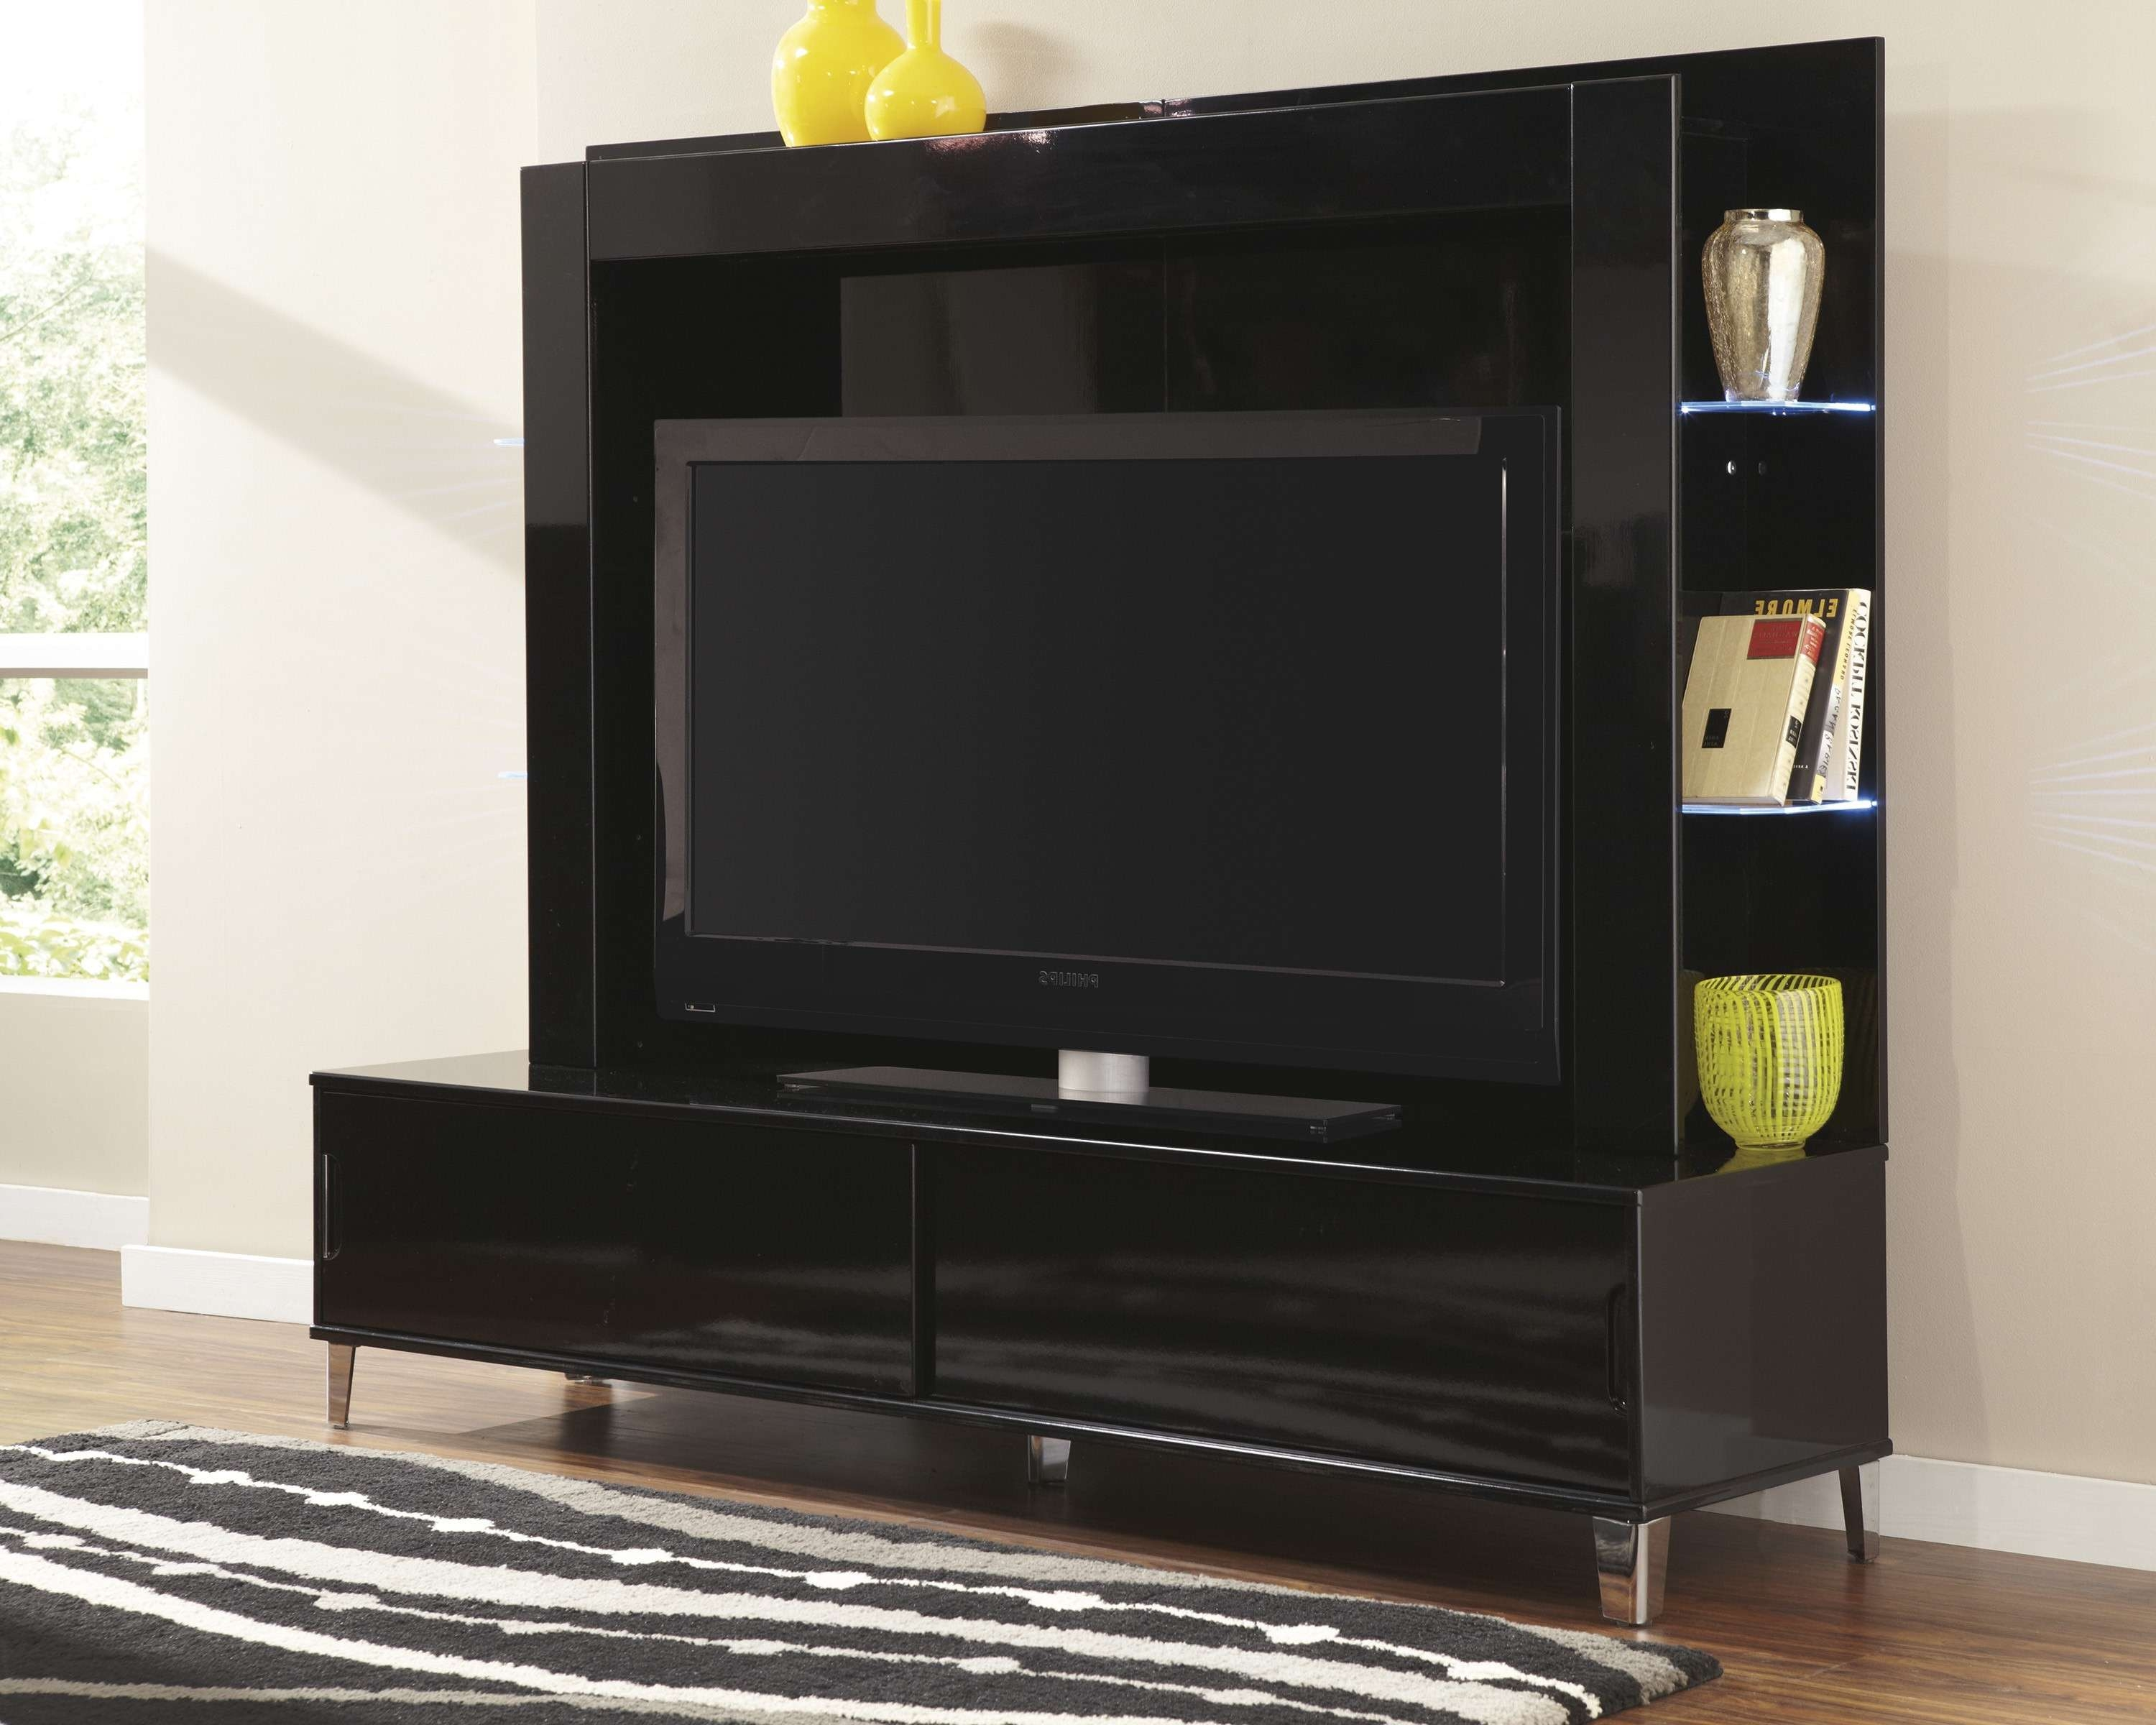 Double Bowl Carpet In Flat Screens Screen Tv Mount Stand Cream Throughout Tall Black Tv Cabinets (View 7 of 20)